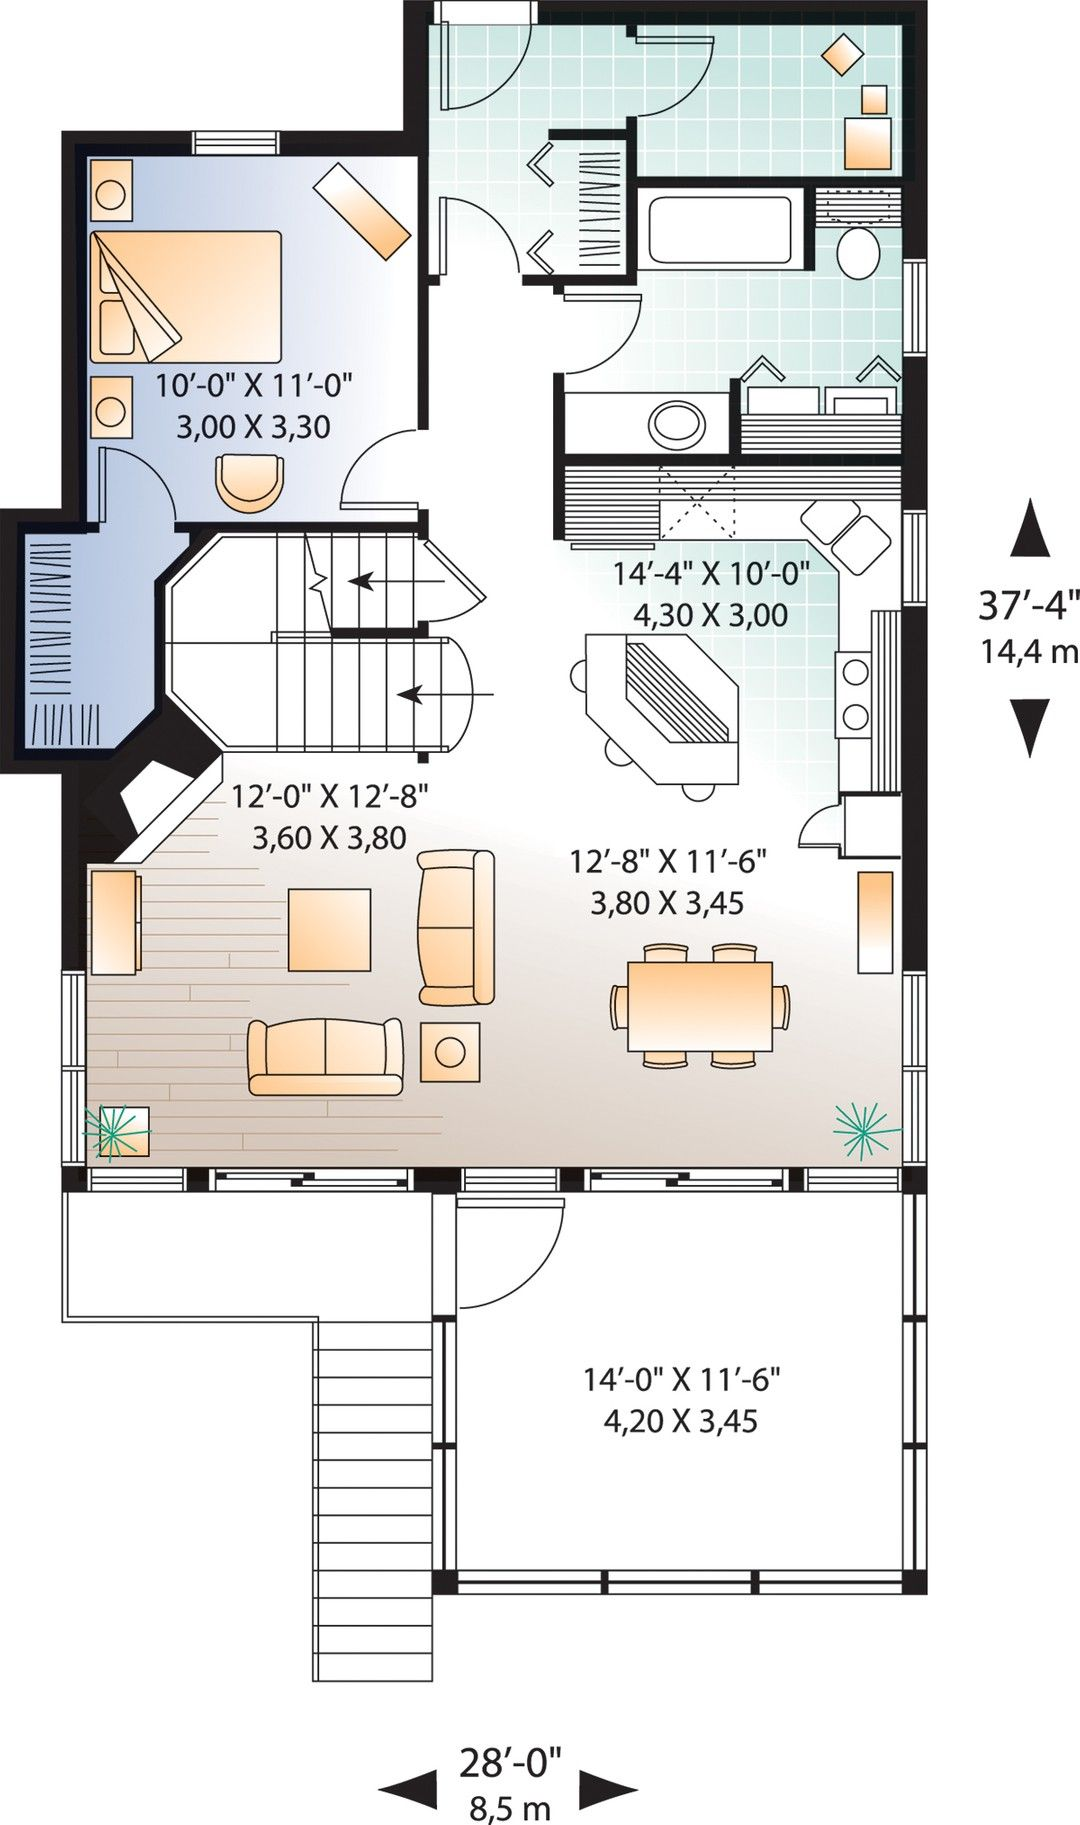 Hpm Home Plans Home Plan 728 4916 In 2021 Beach Style House Plans House Plans Country Style House Plans